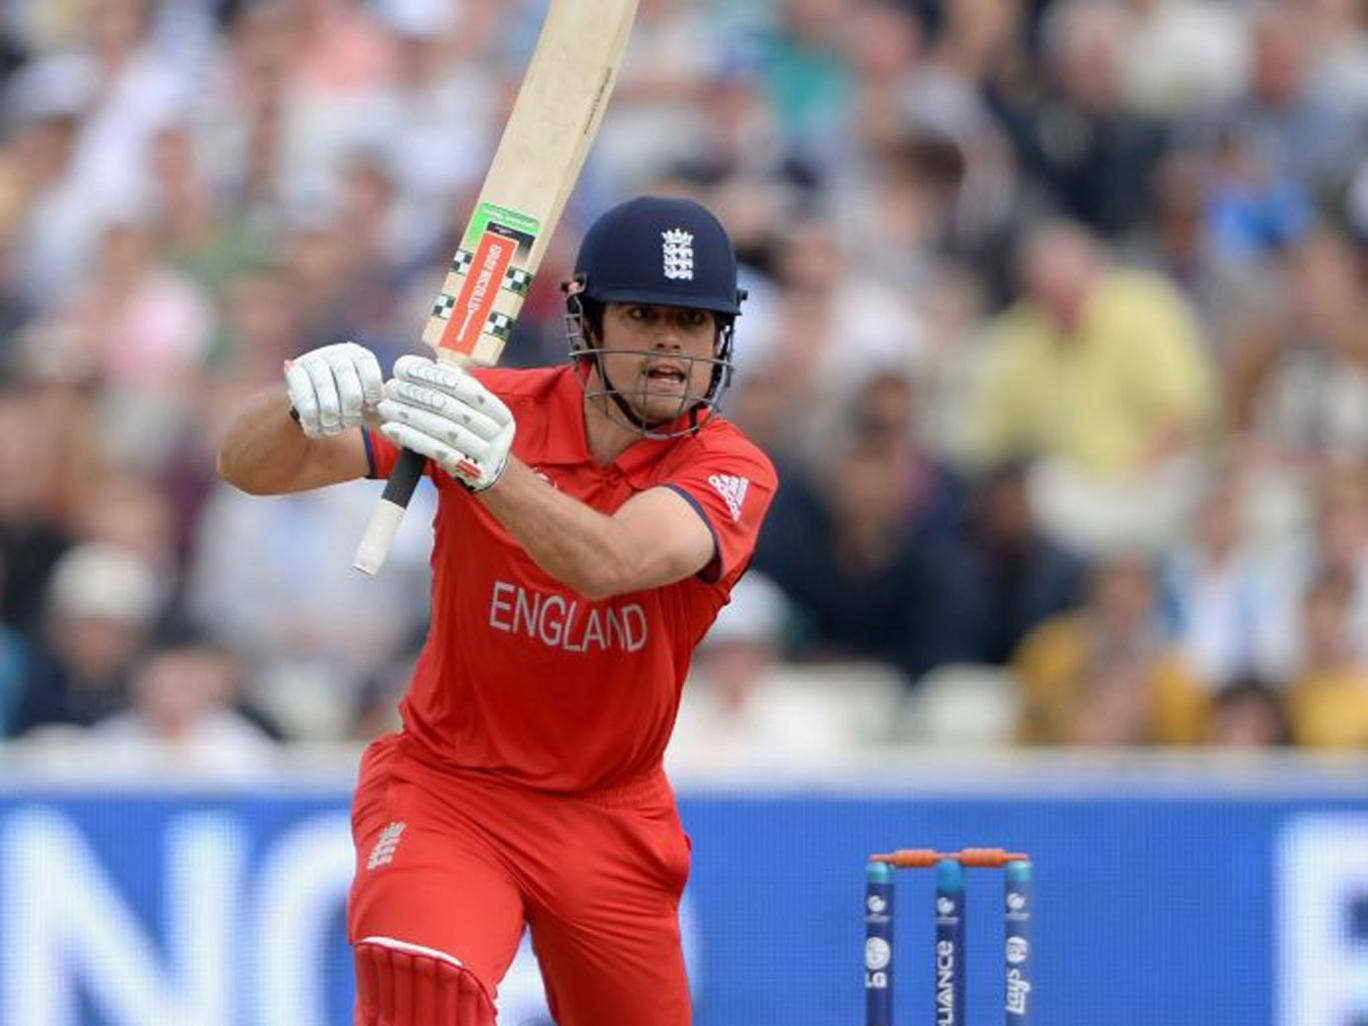 Delighted: England captain Alastair Cook was pleased with the display